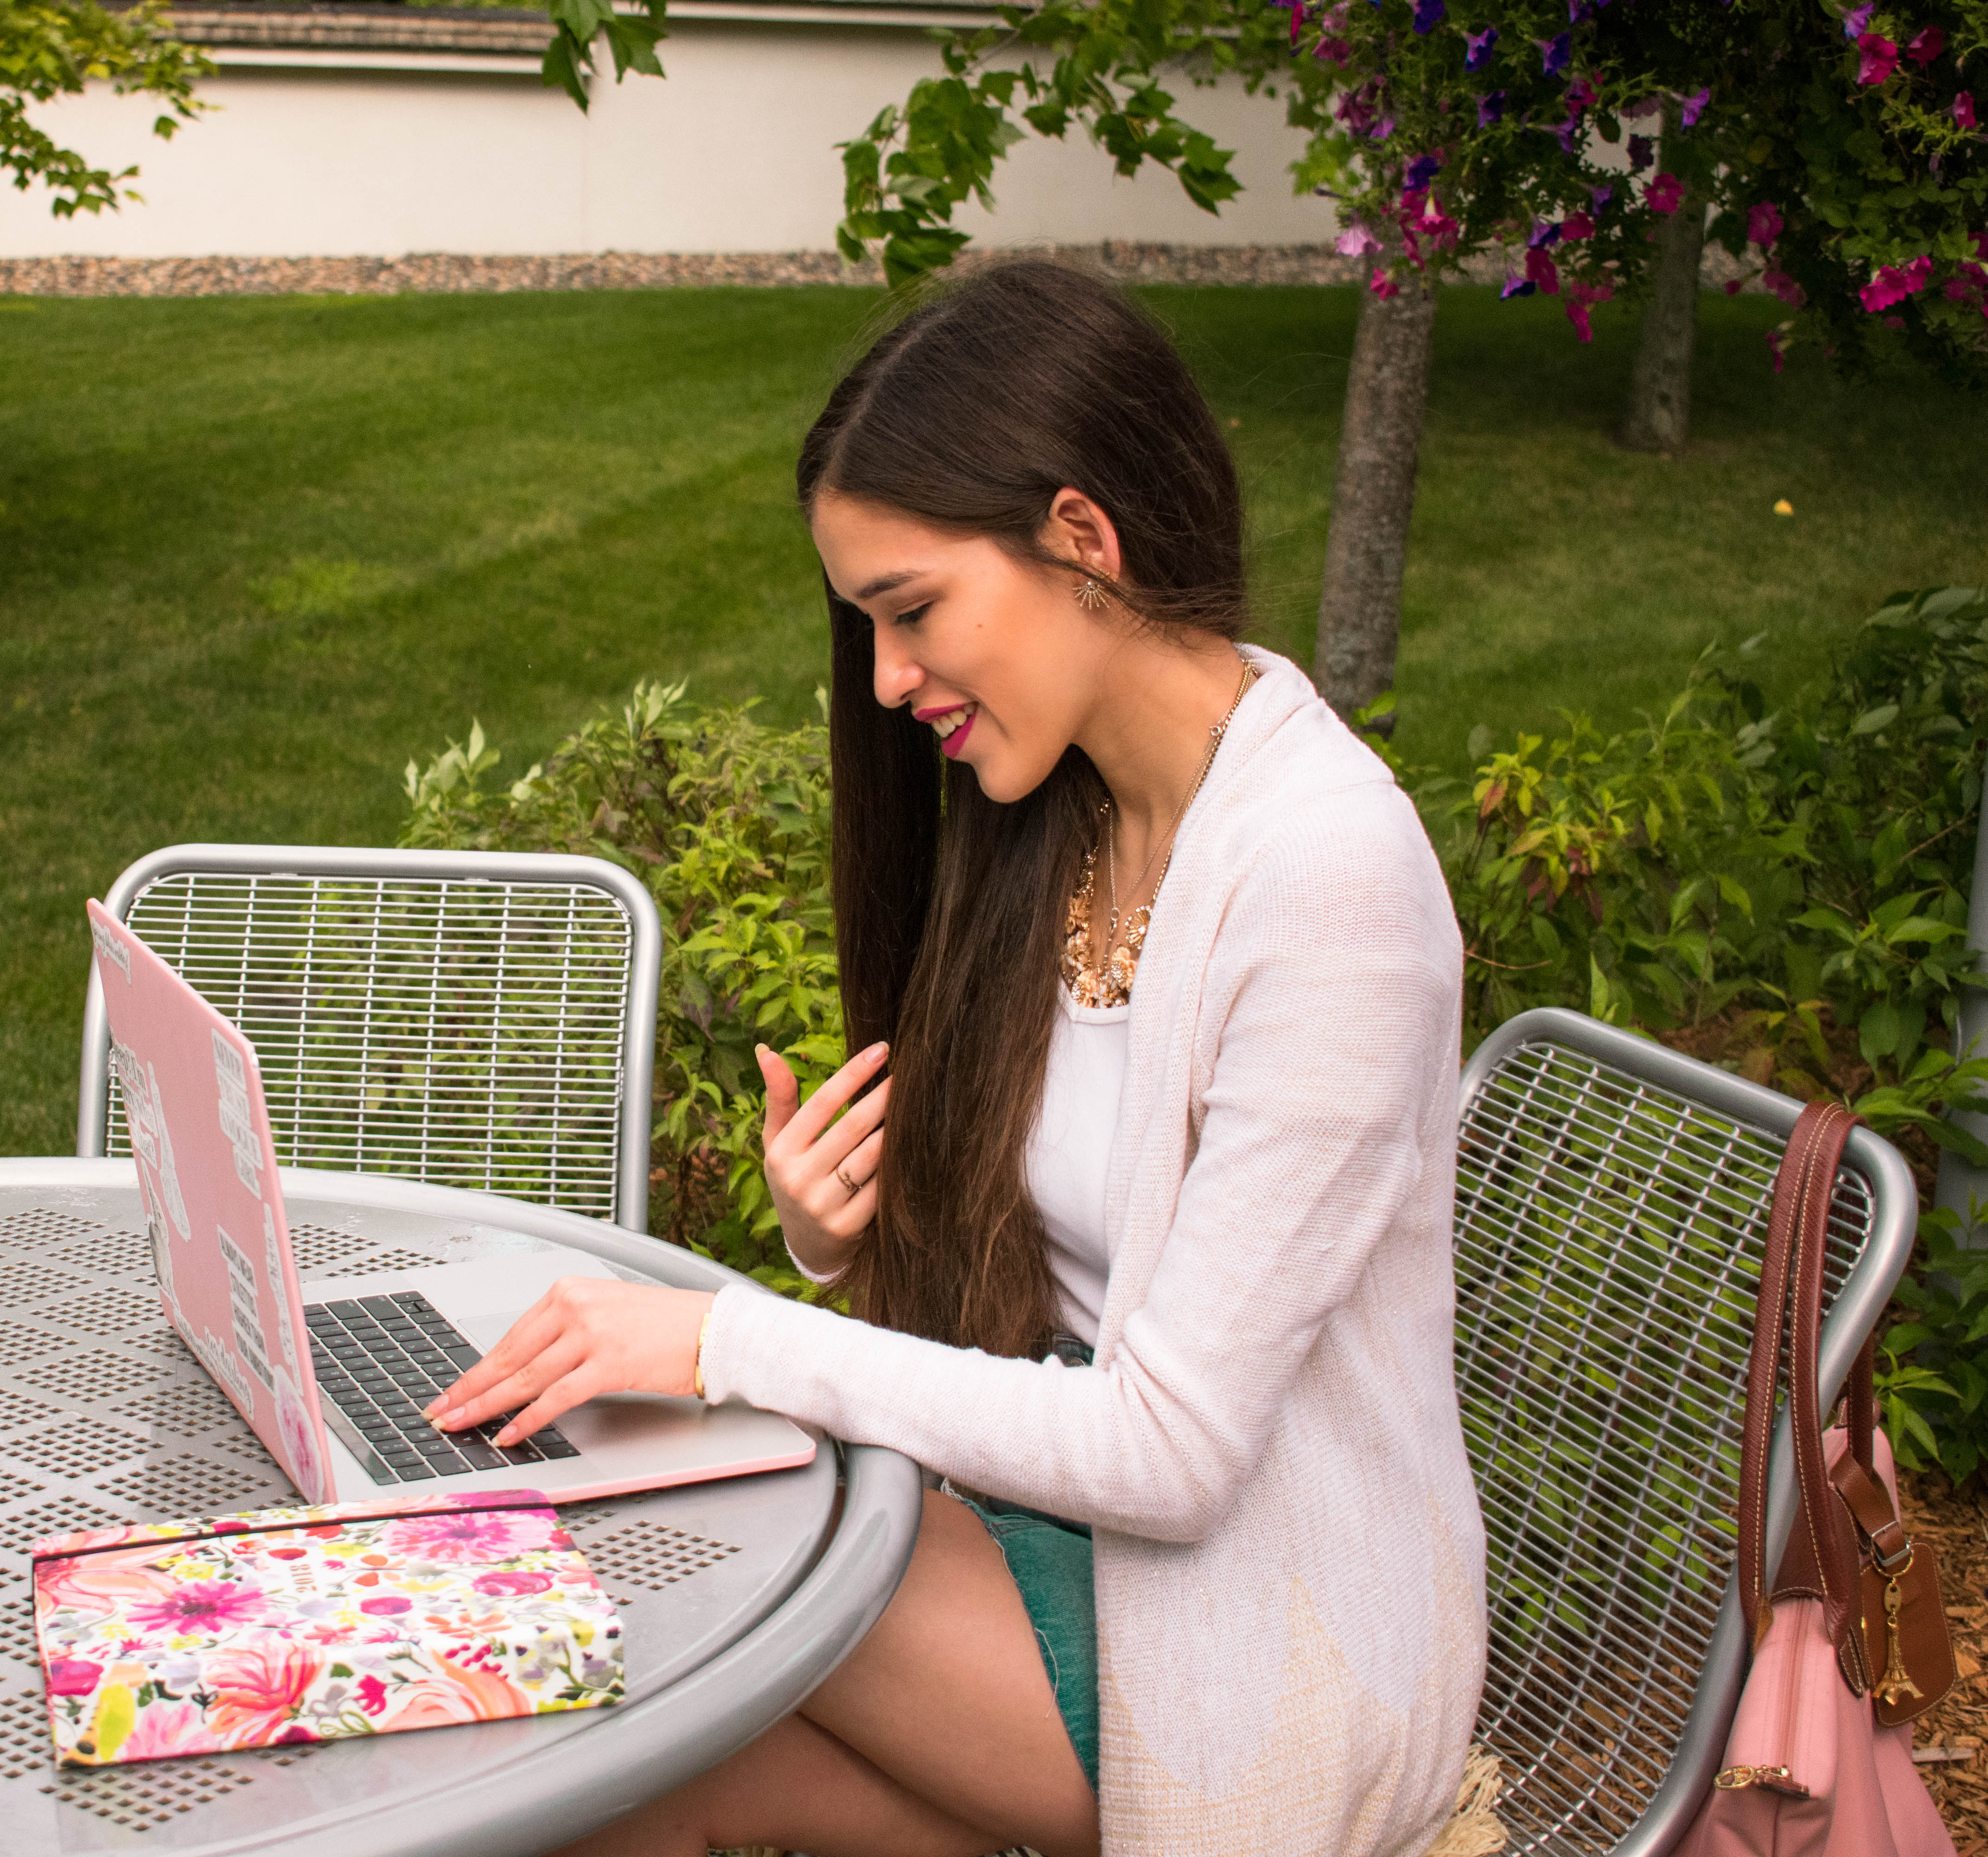 NYC college and style blogger Eva Phan of Eva Darling in metallic gold Lilly Pulitzer Tatum Cardigan macbook pro 15 inch stickers from Redbubble fashion design sketch Kate Spade panner agenda Normandale Community College Bloomington MN Longchamp Le Pliage Cherry Blossom Pink